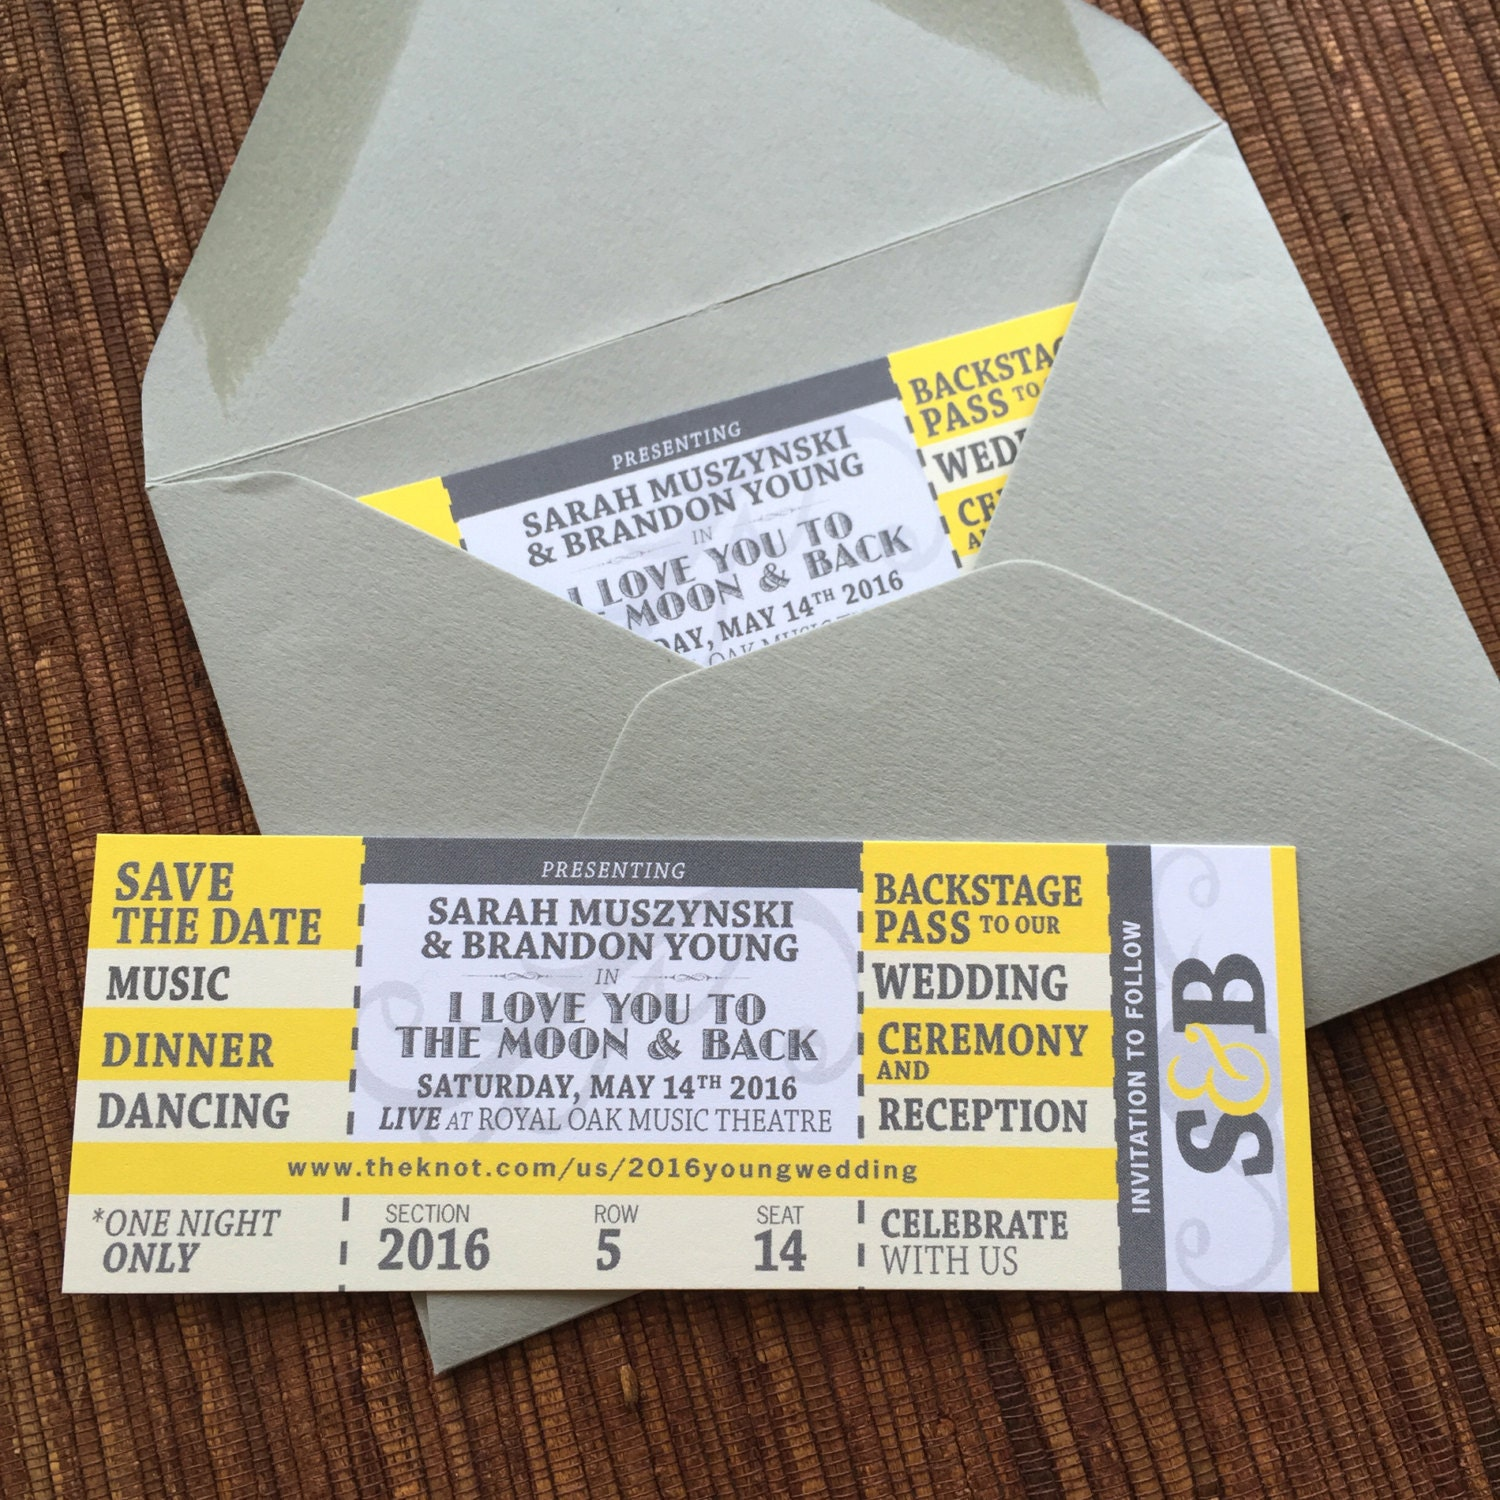 Concert Ticket Save the Date DIY Printable Invitation – Invitations That Look Like Concert Tickets